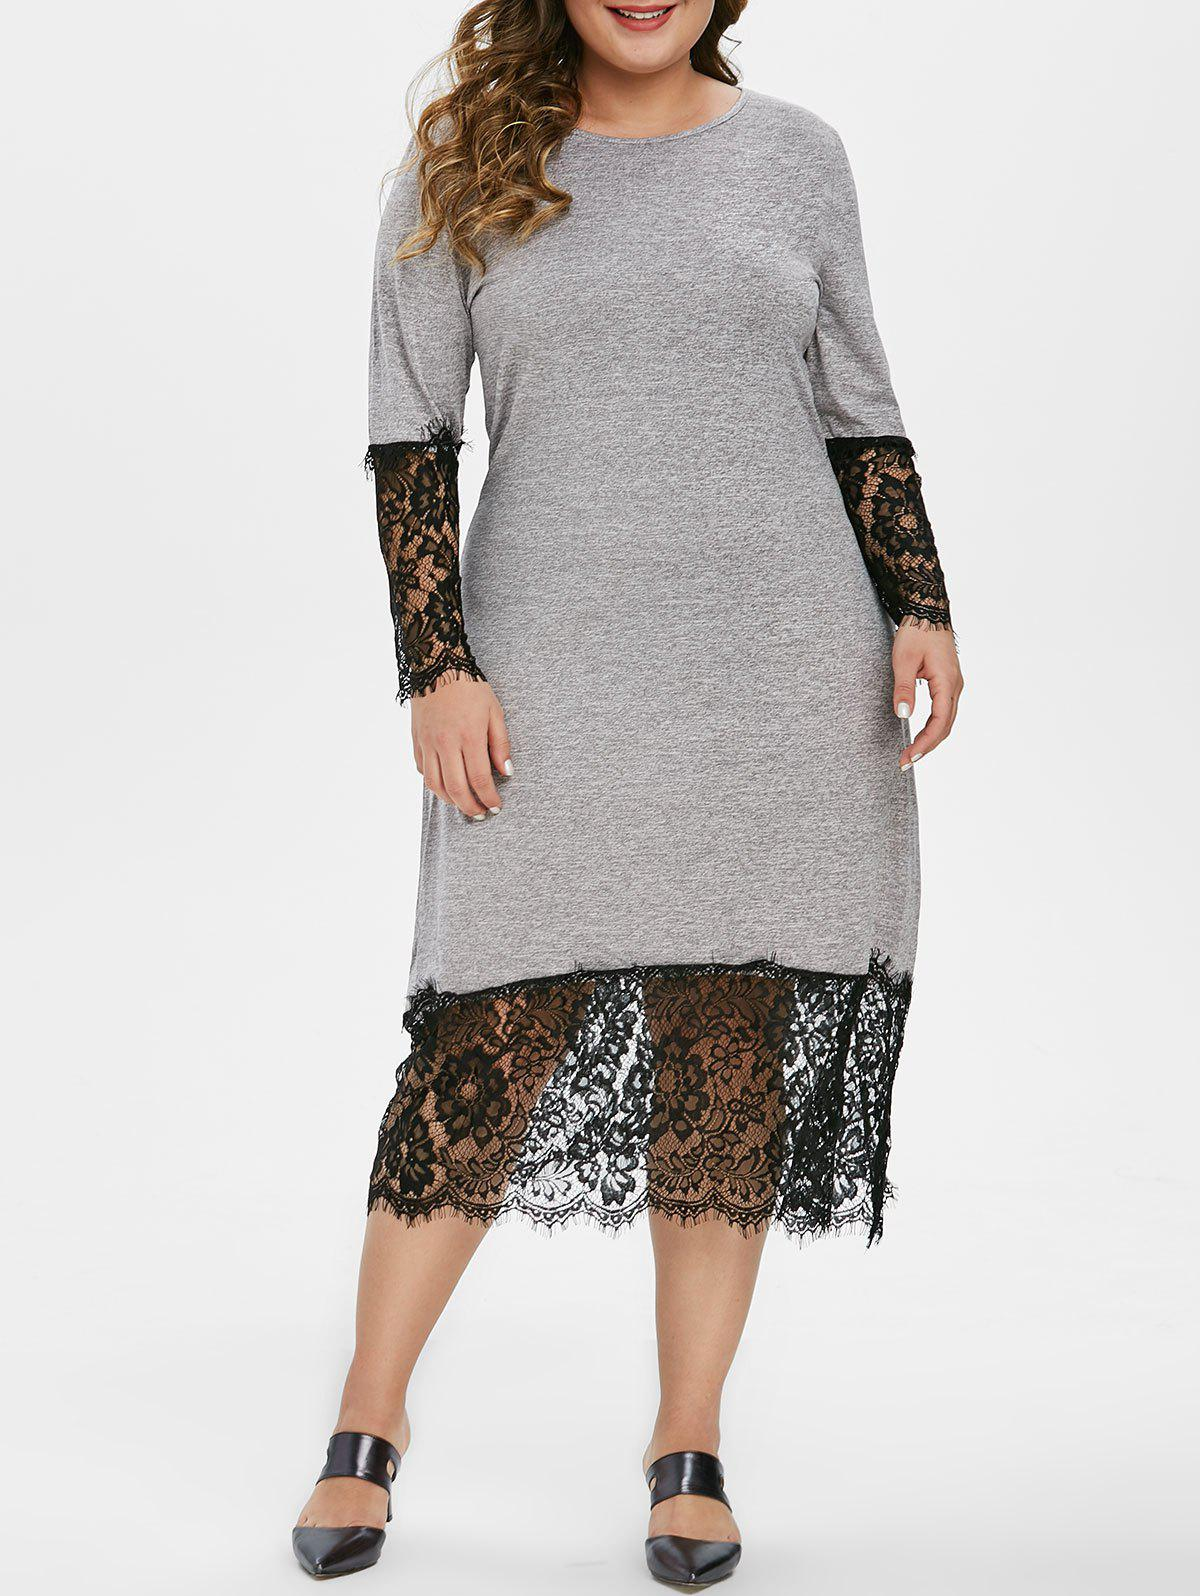 Long Sleeve Lace Panel Marl Casual Plus Size Dress